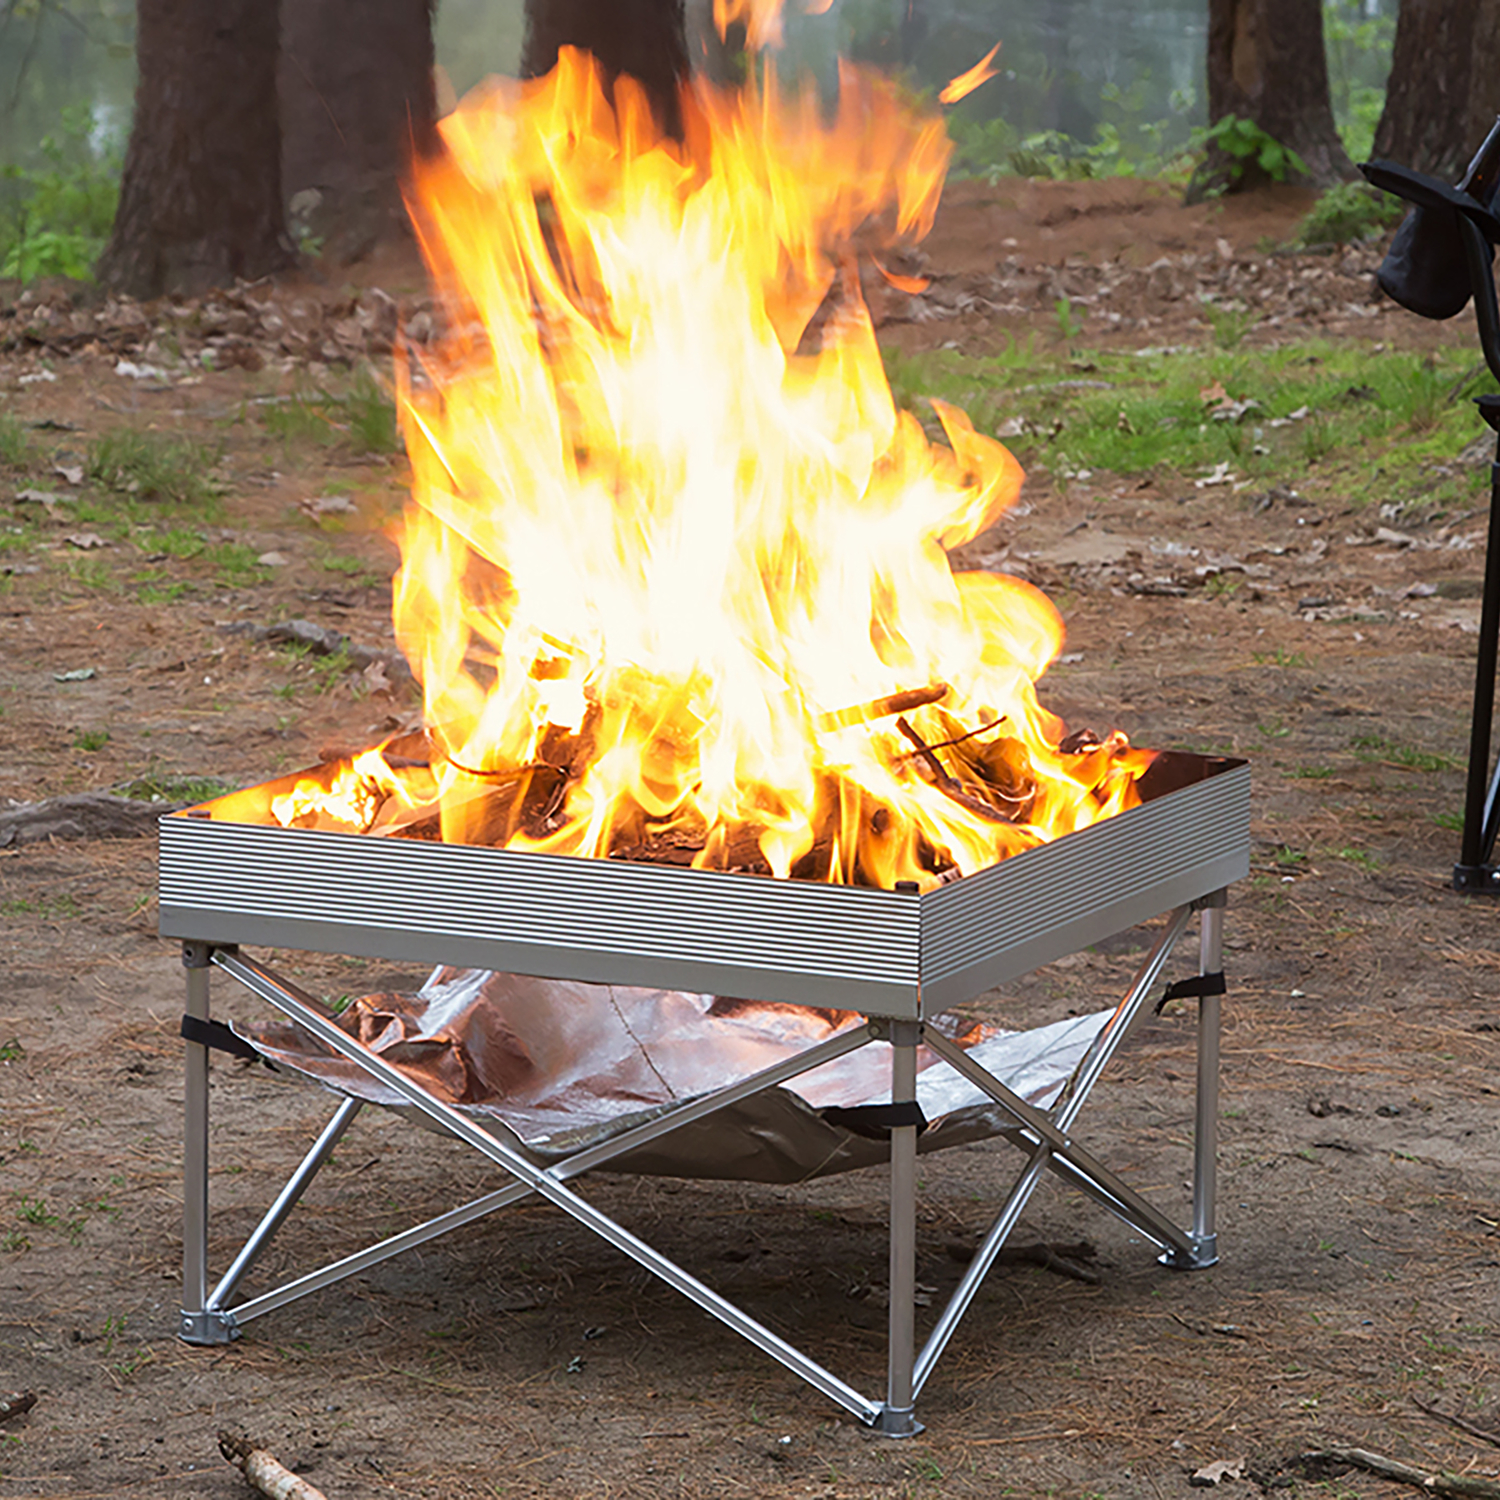 Backyard Outdoor Fire Pits & Tables at Ace Hardware on Propane Fire Pit Ace Hardware id=34173